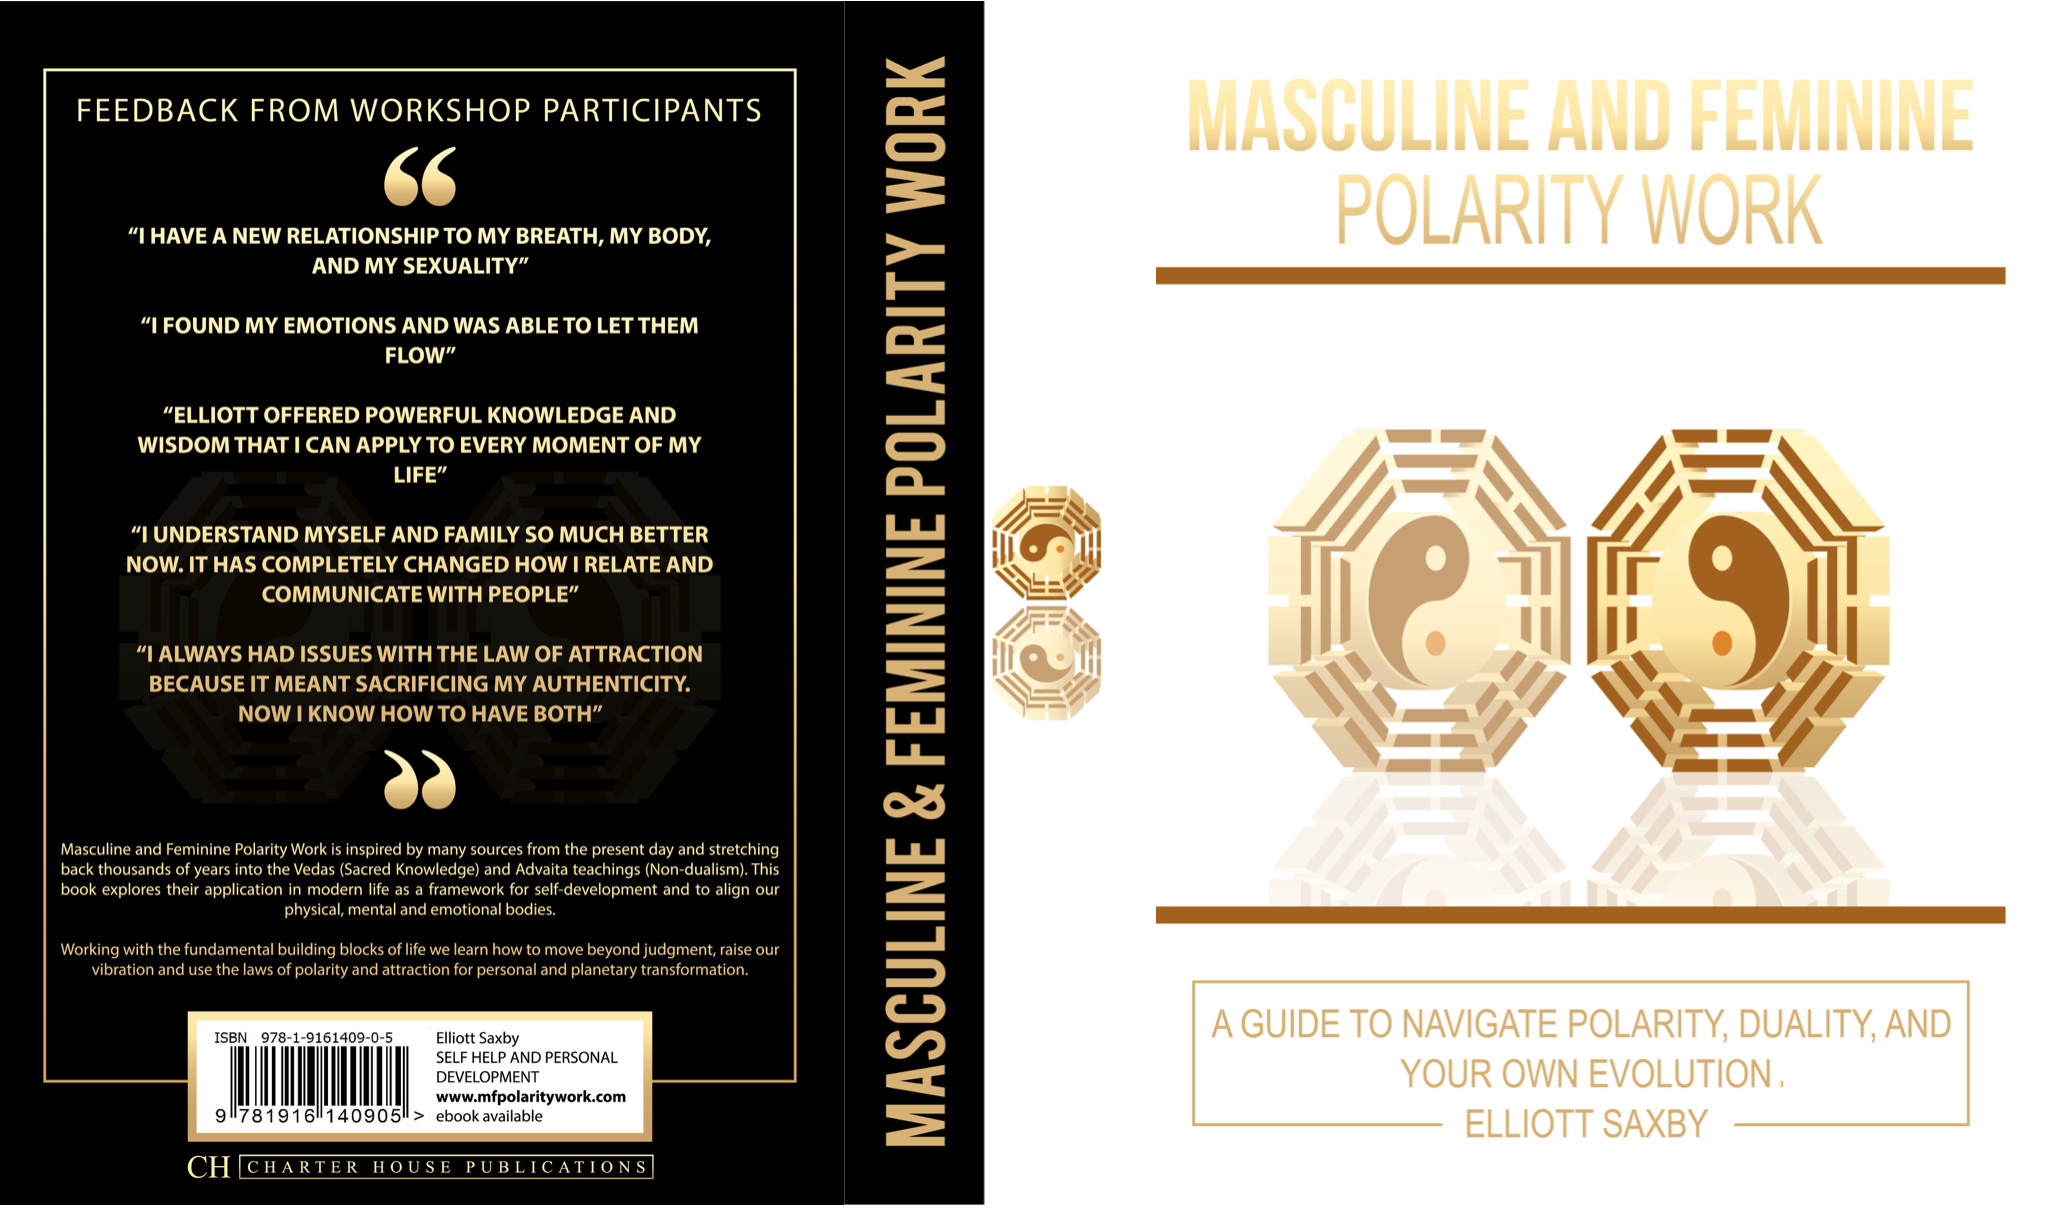 Masculine and Feminine Polarity Work Book